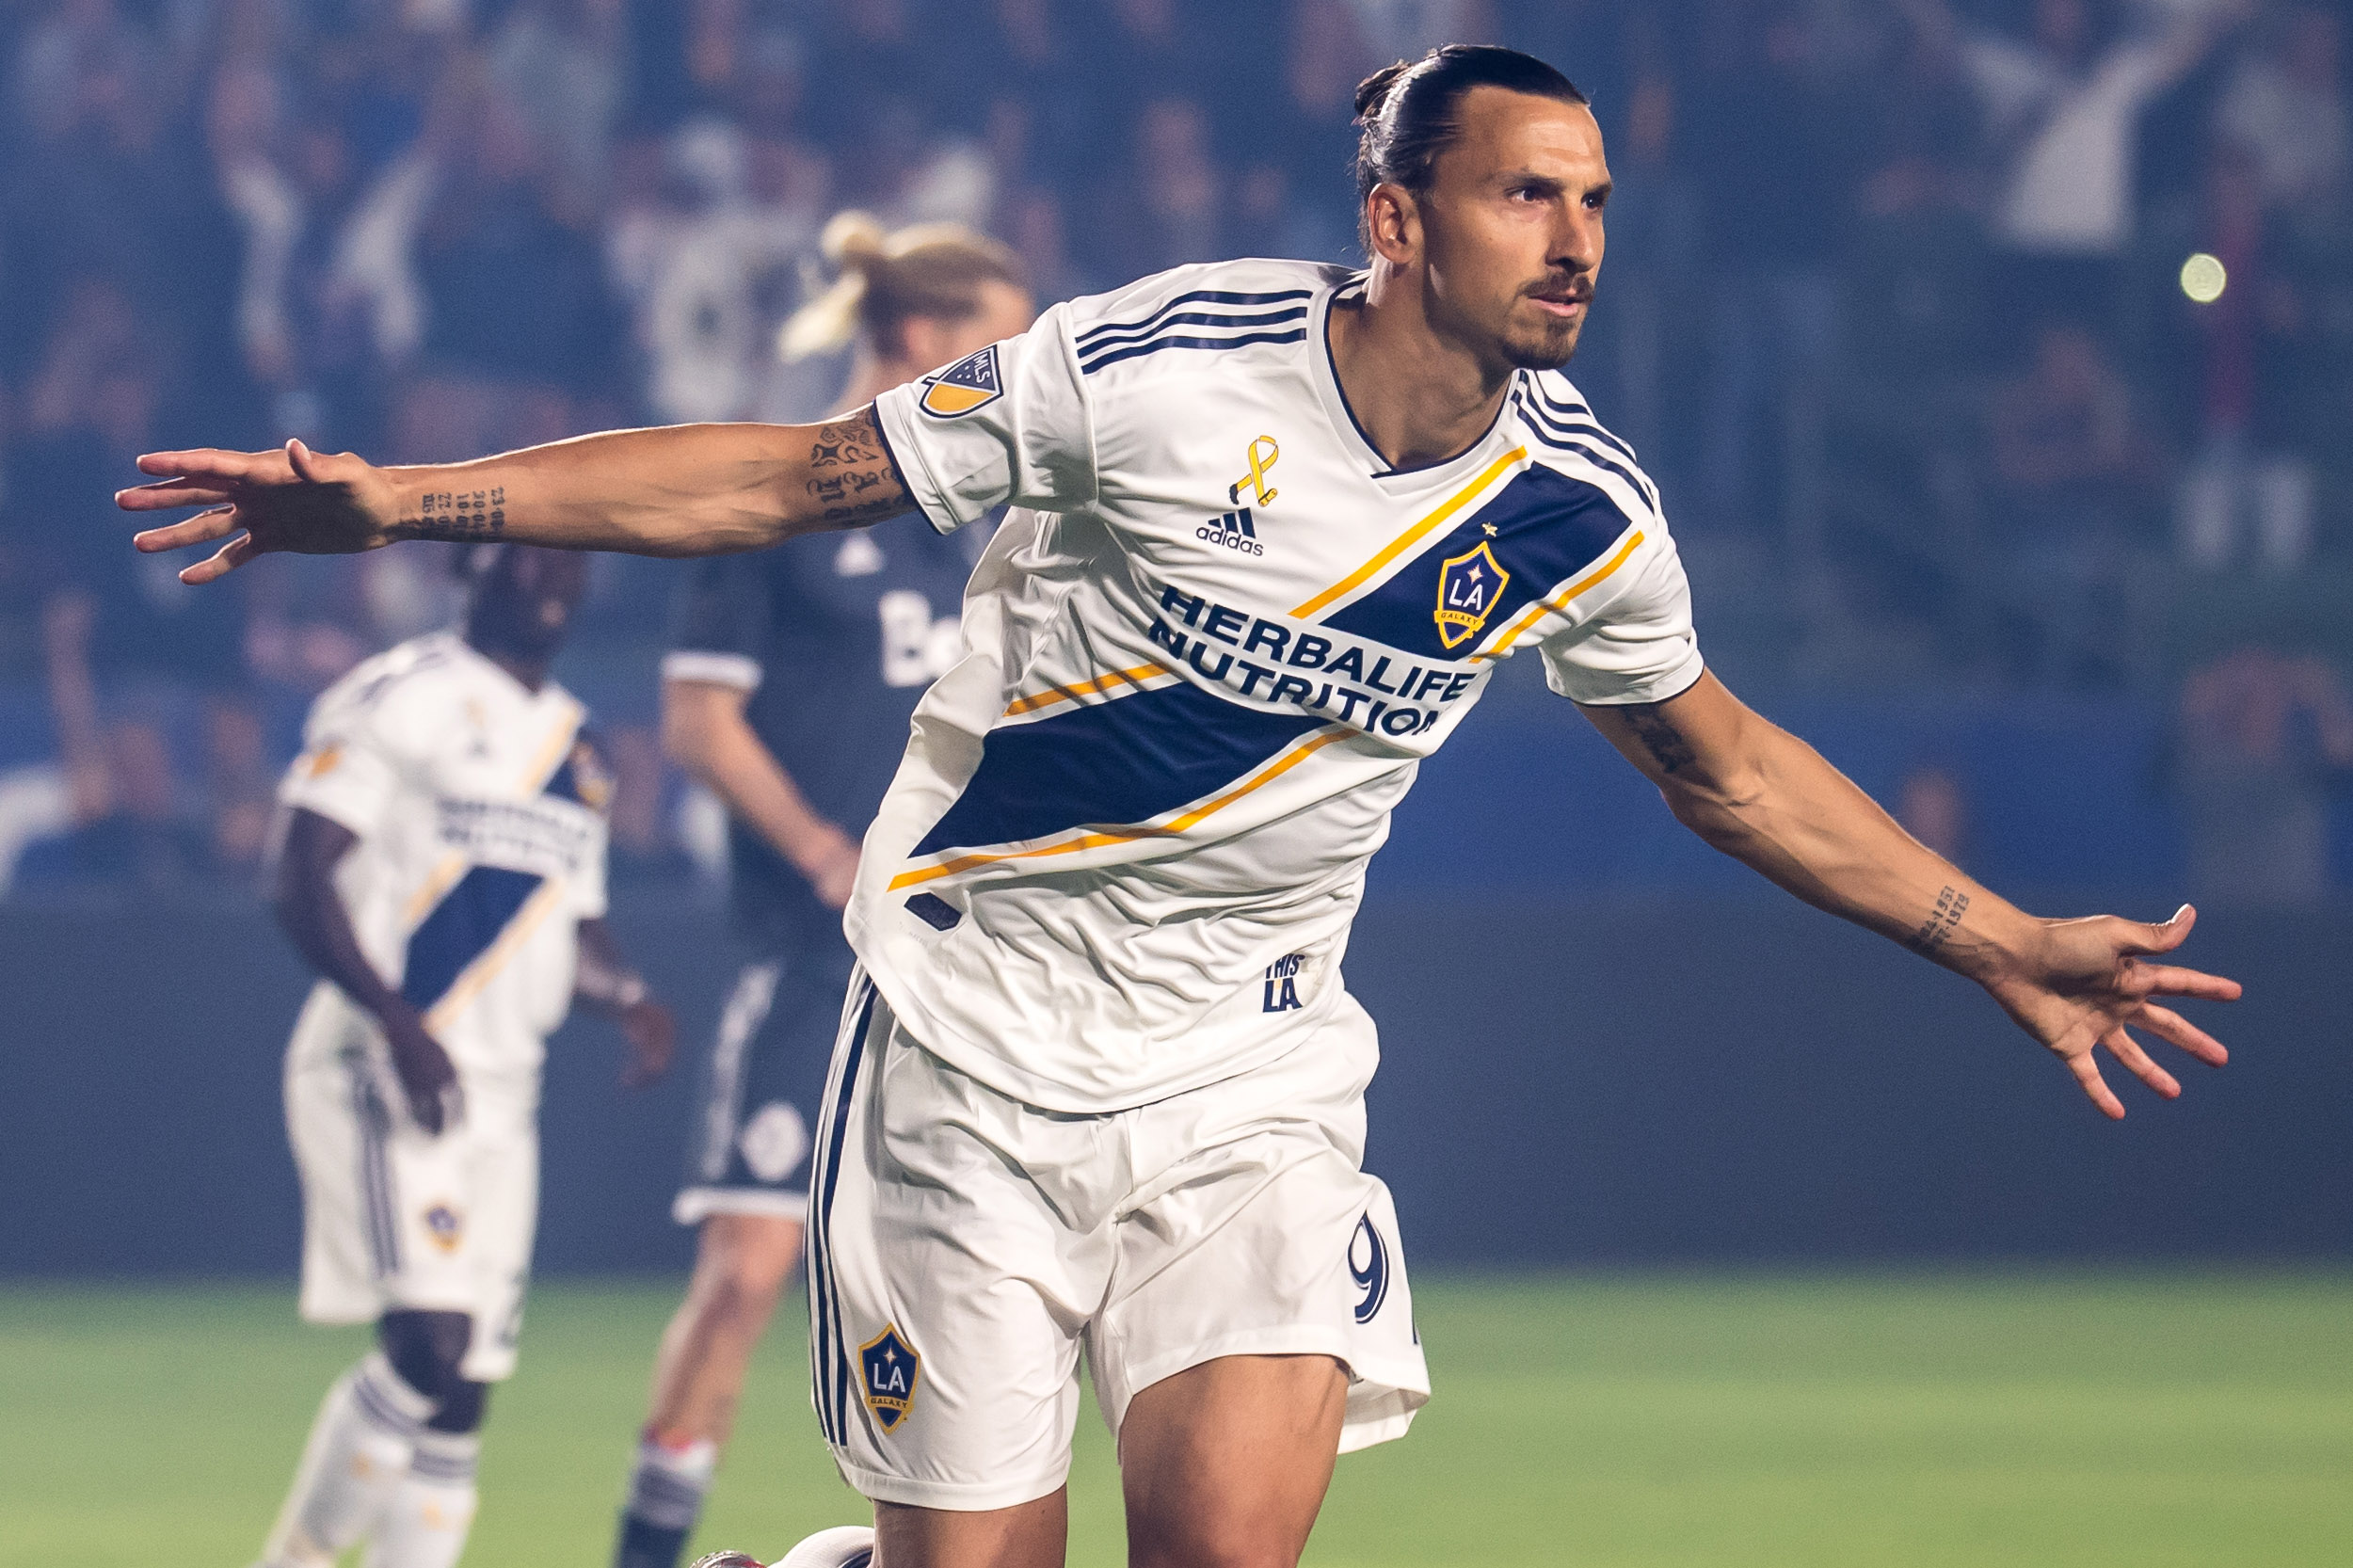 Zlatan Ibrahimovic #9 of Los Angeles Galaxy celebrates his penalty kick goal during the Los Angeles Galaxy's MLS match against Vancouver Whitecaps at the StubHub Center on September 29, 2018 in Carson, California. The Los Angeles Galaxy won the match 3-0.